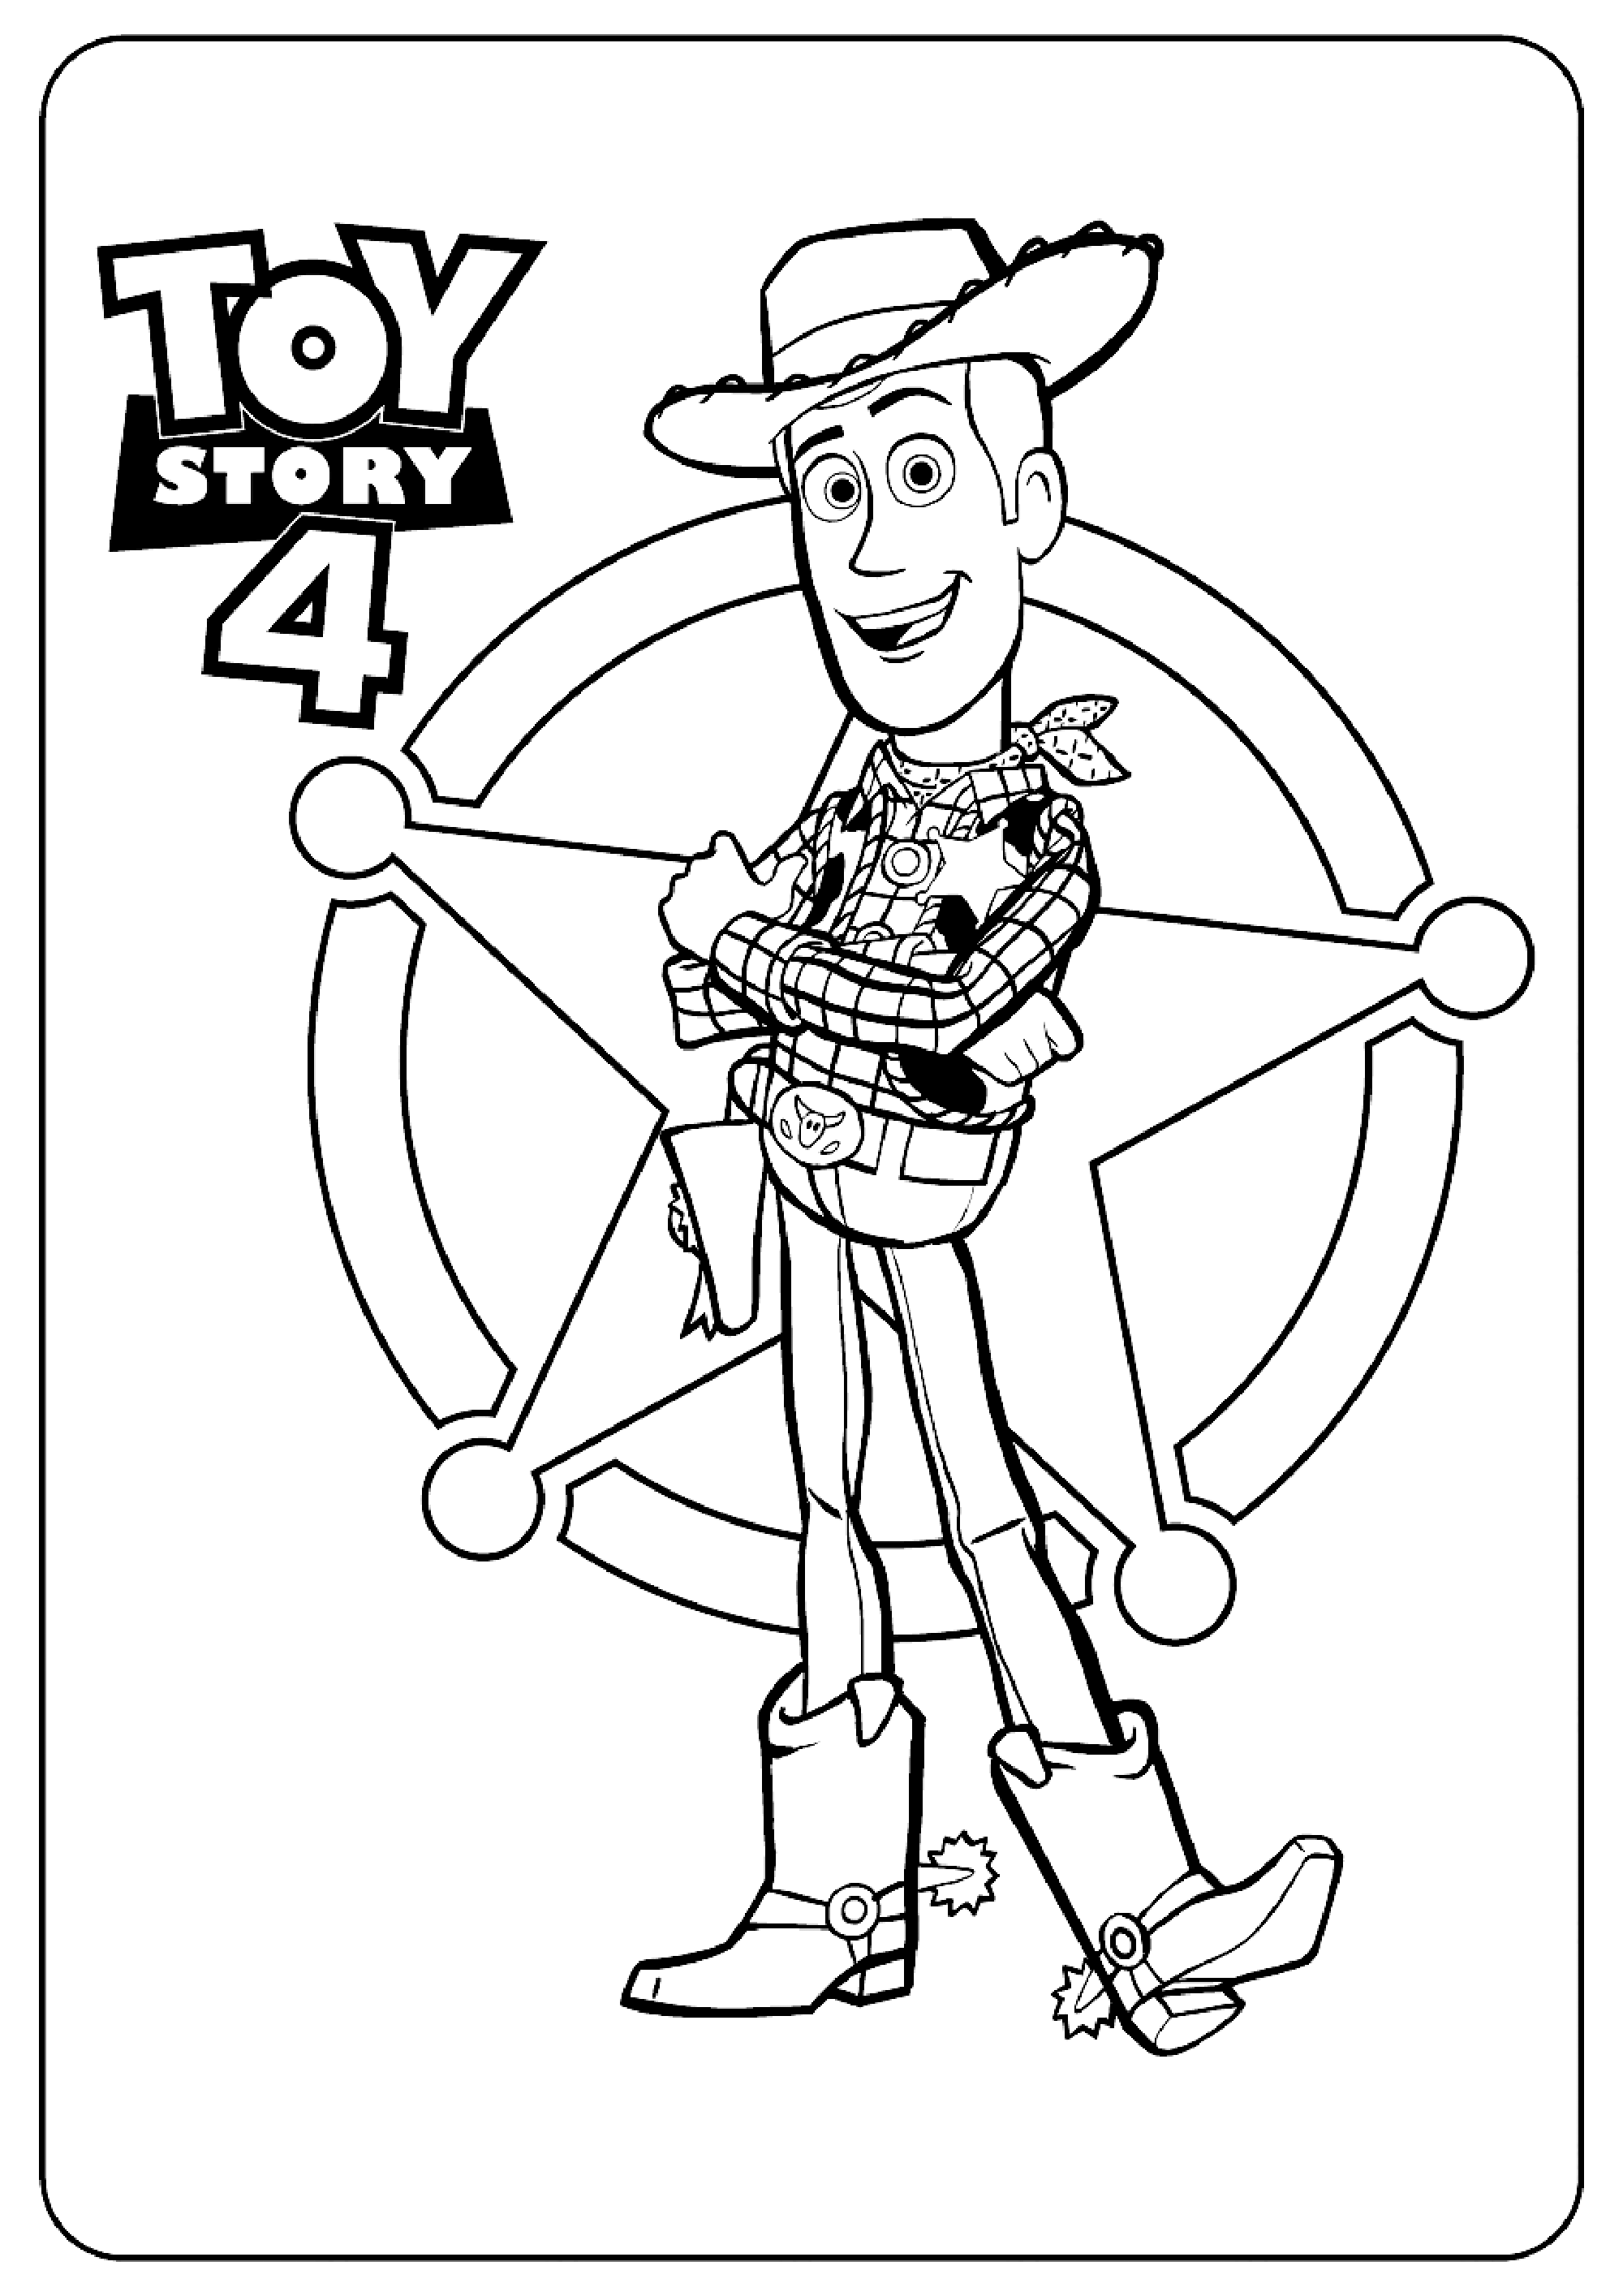 coloring toy story 4 18 free printable toy story 4 coloring pages 1nza 4 coloring toy story